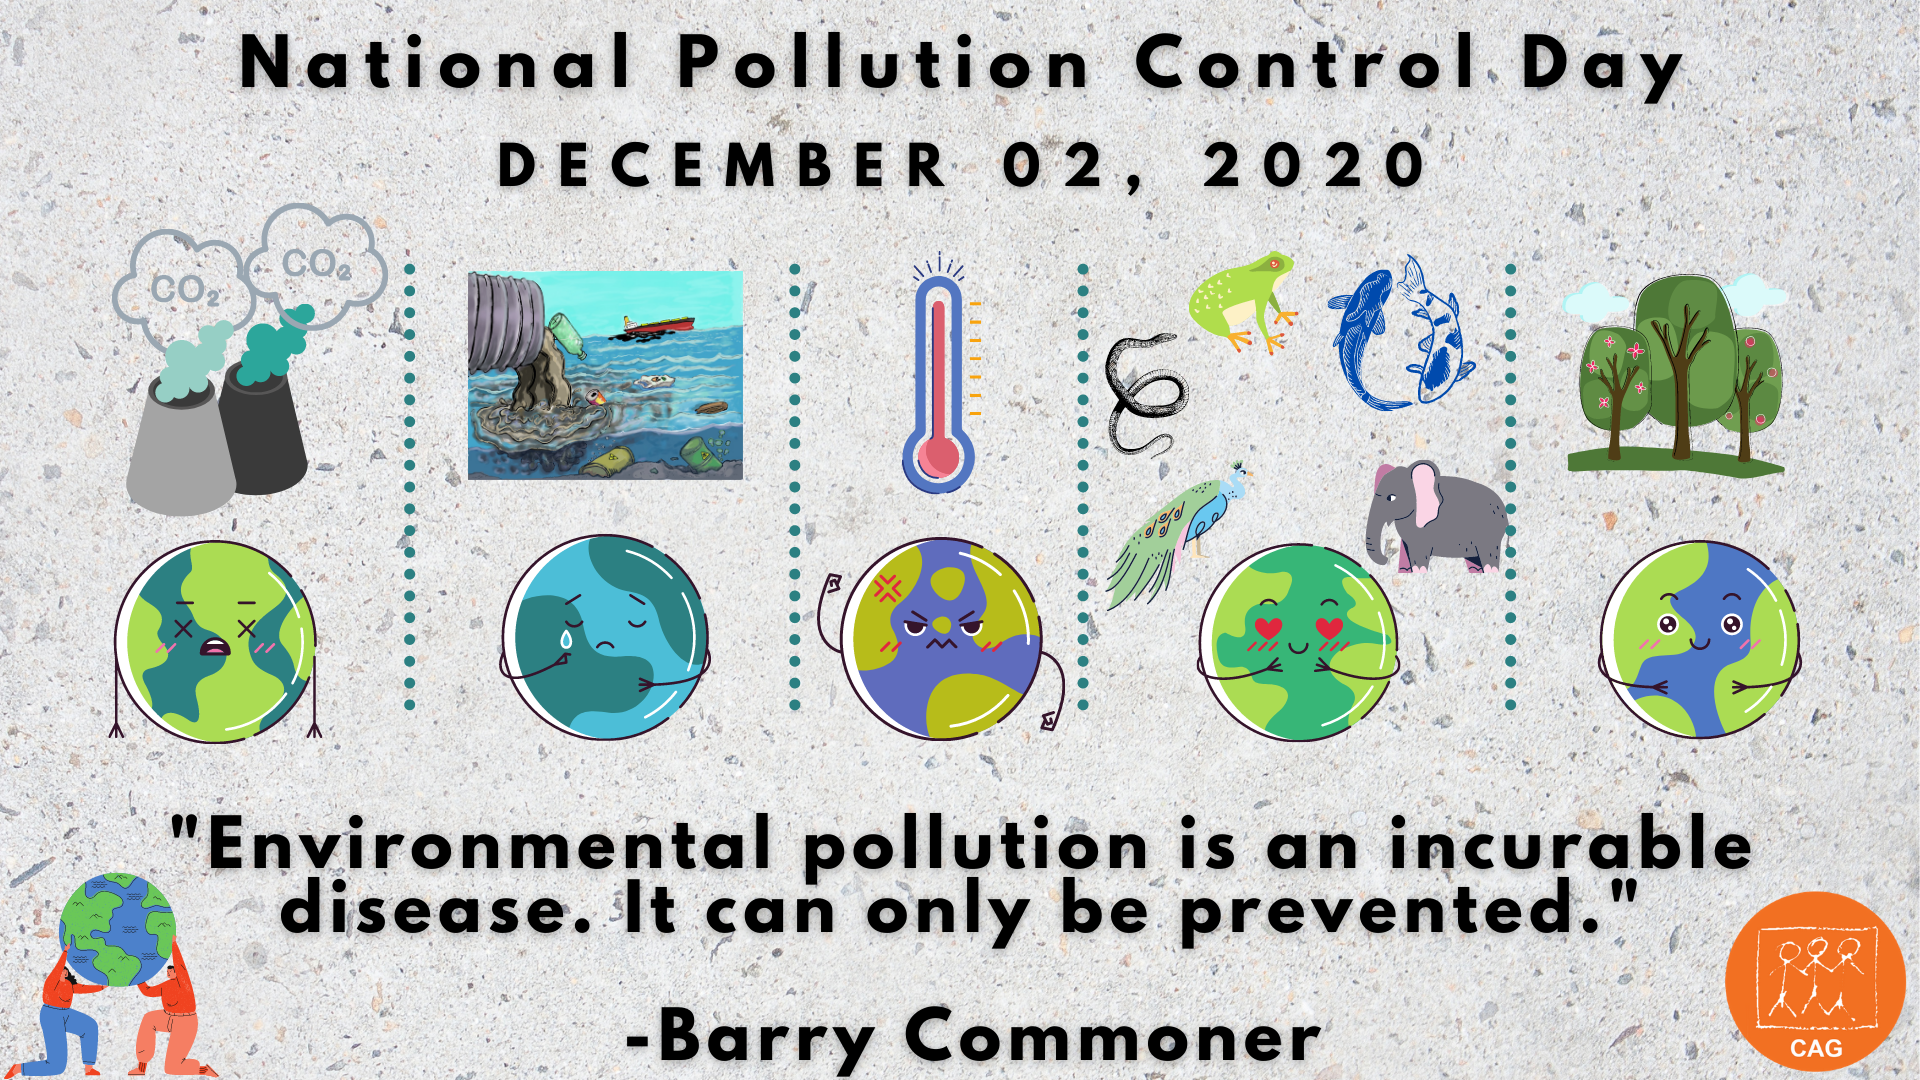 National Pollution Control Day 2020